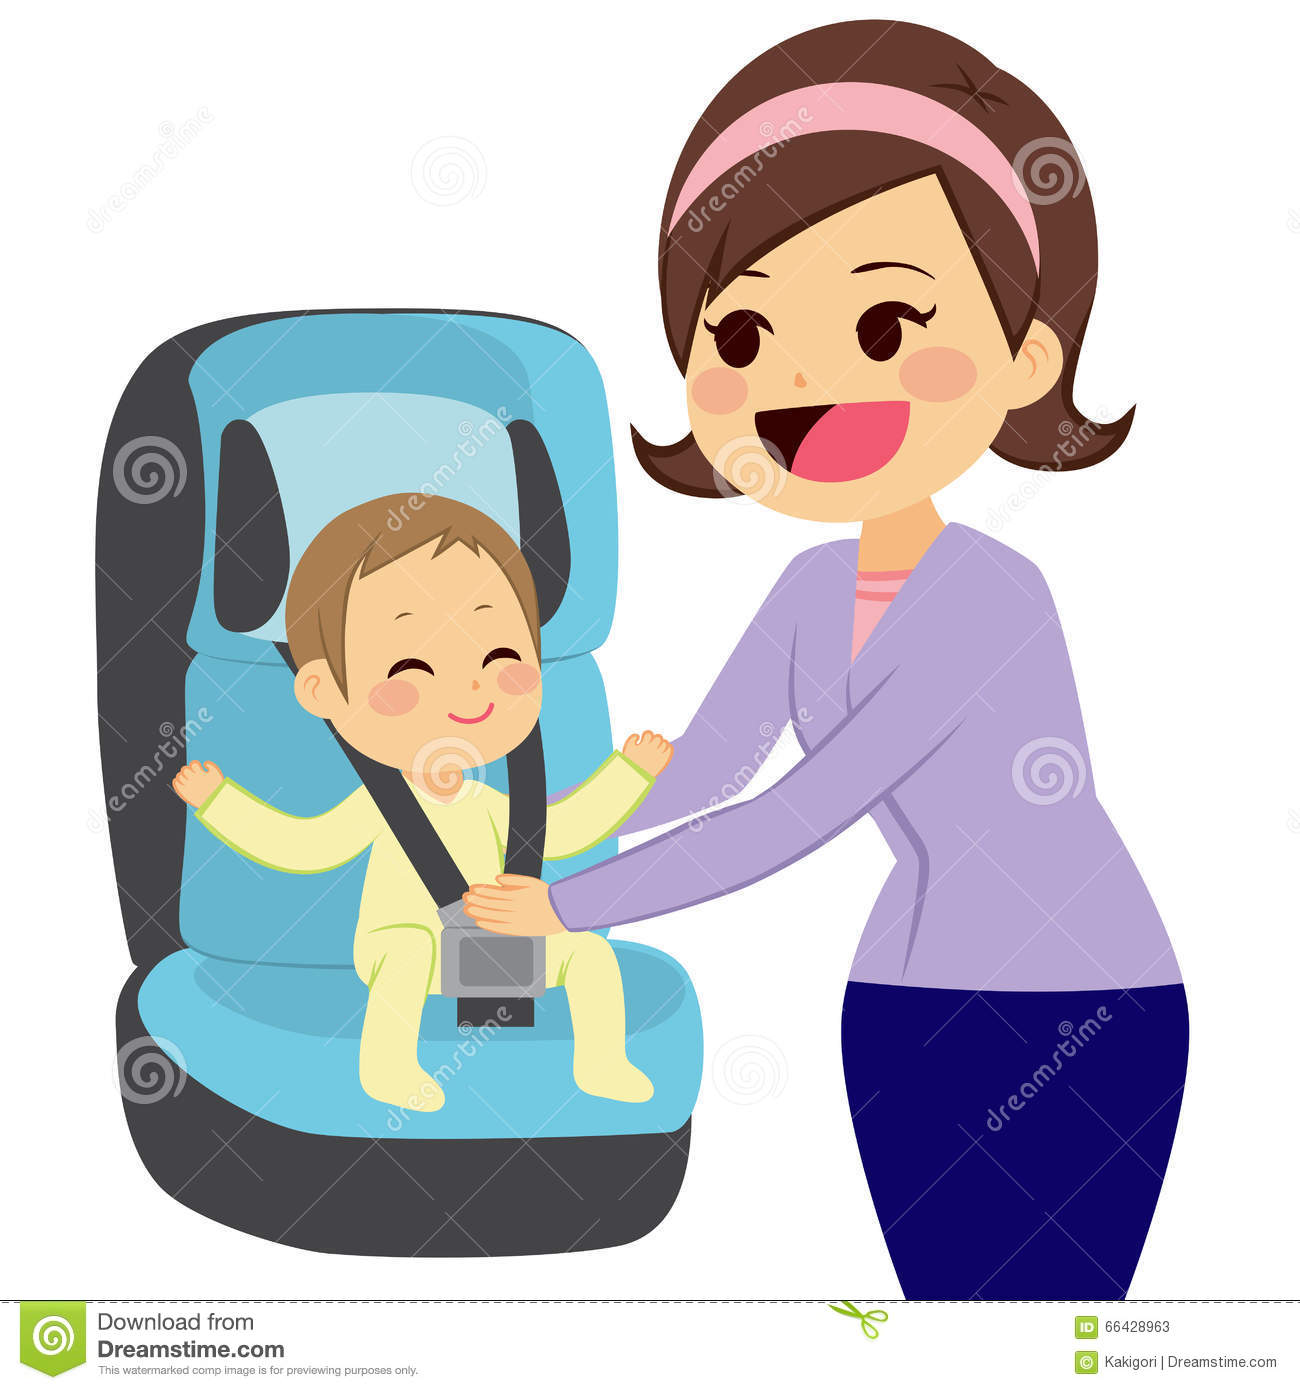 Car seat safety clipart.